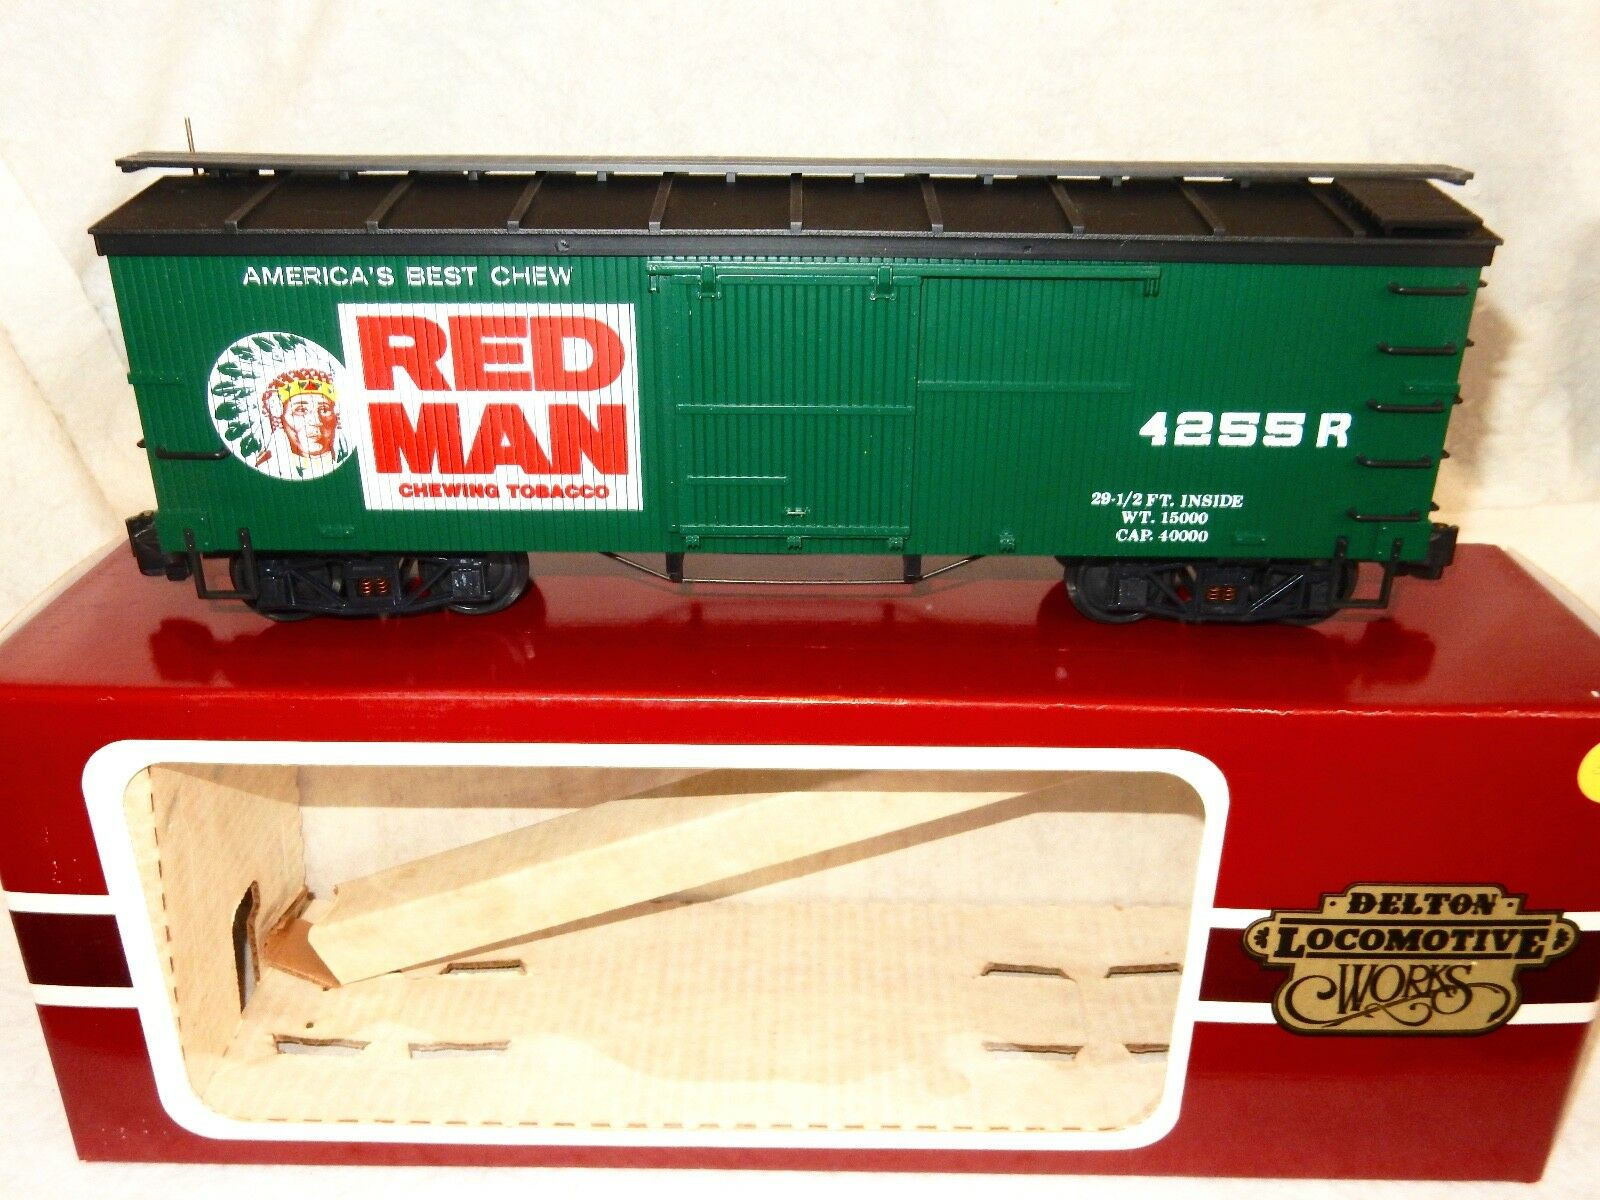 Delton Locomotive Works Red Man Tobacco Old Style Woodside Boxcar-ln w orig box